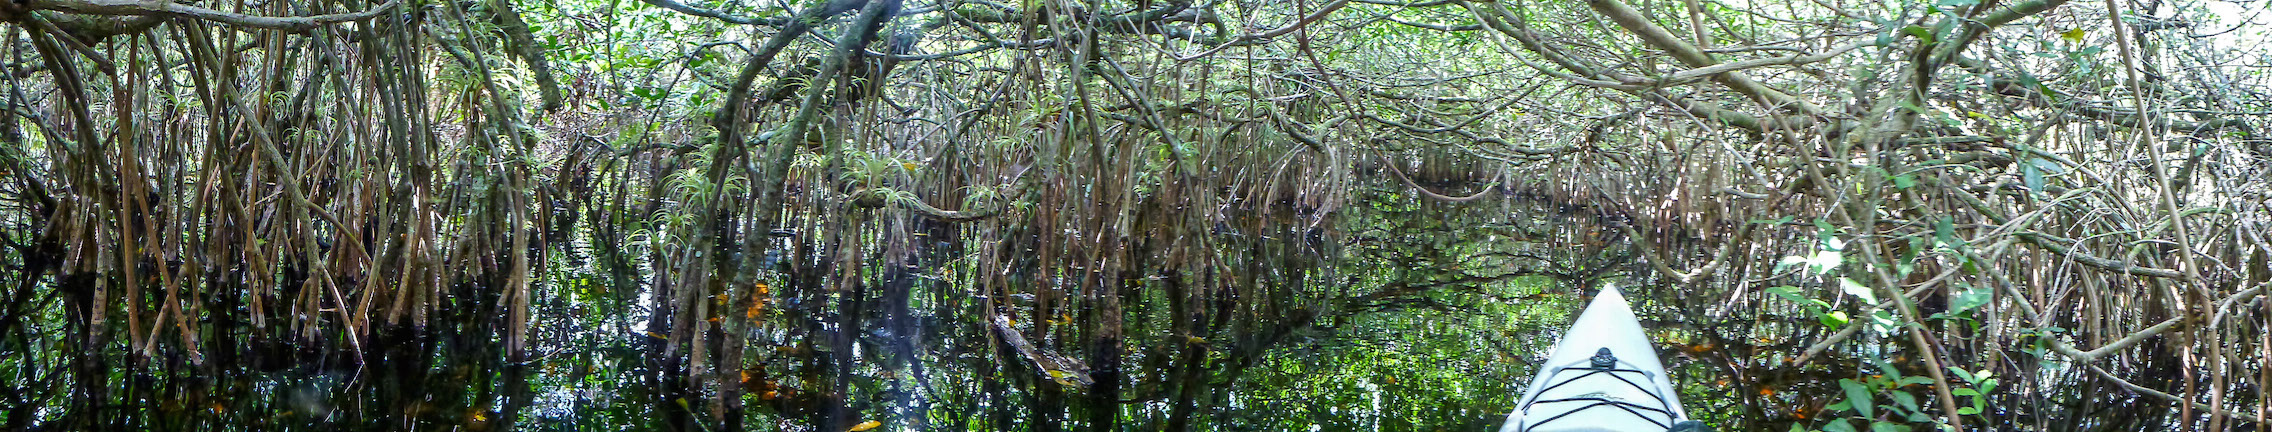 everglades-mangrove-tunnel-2015